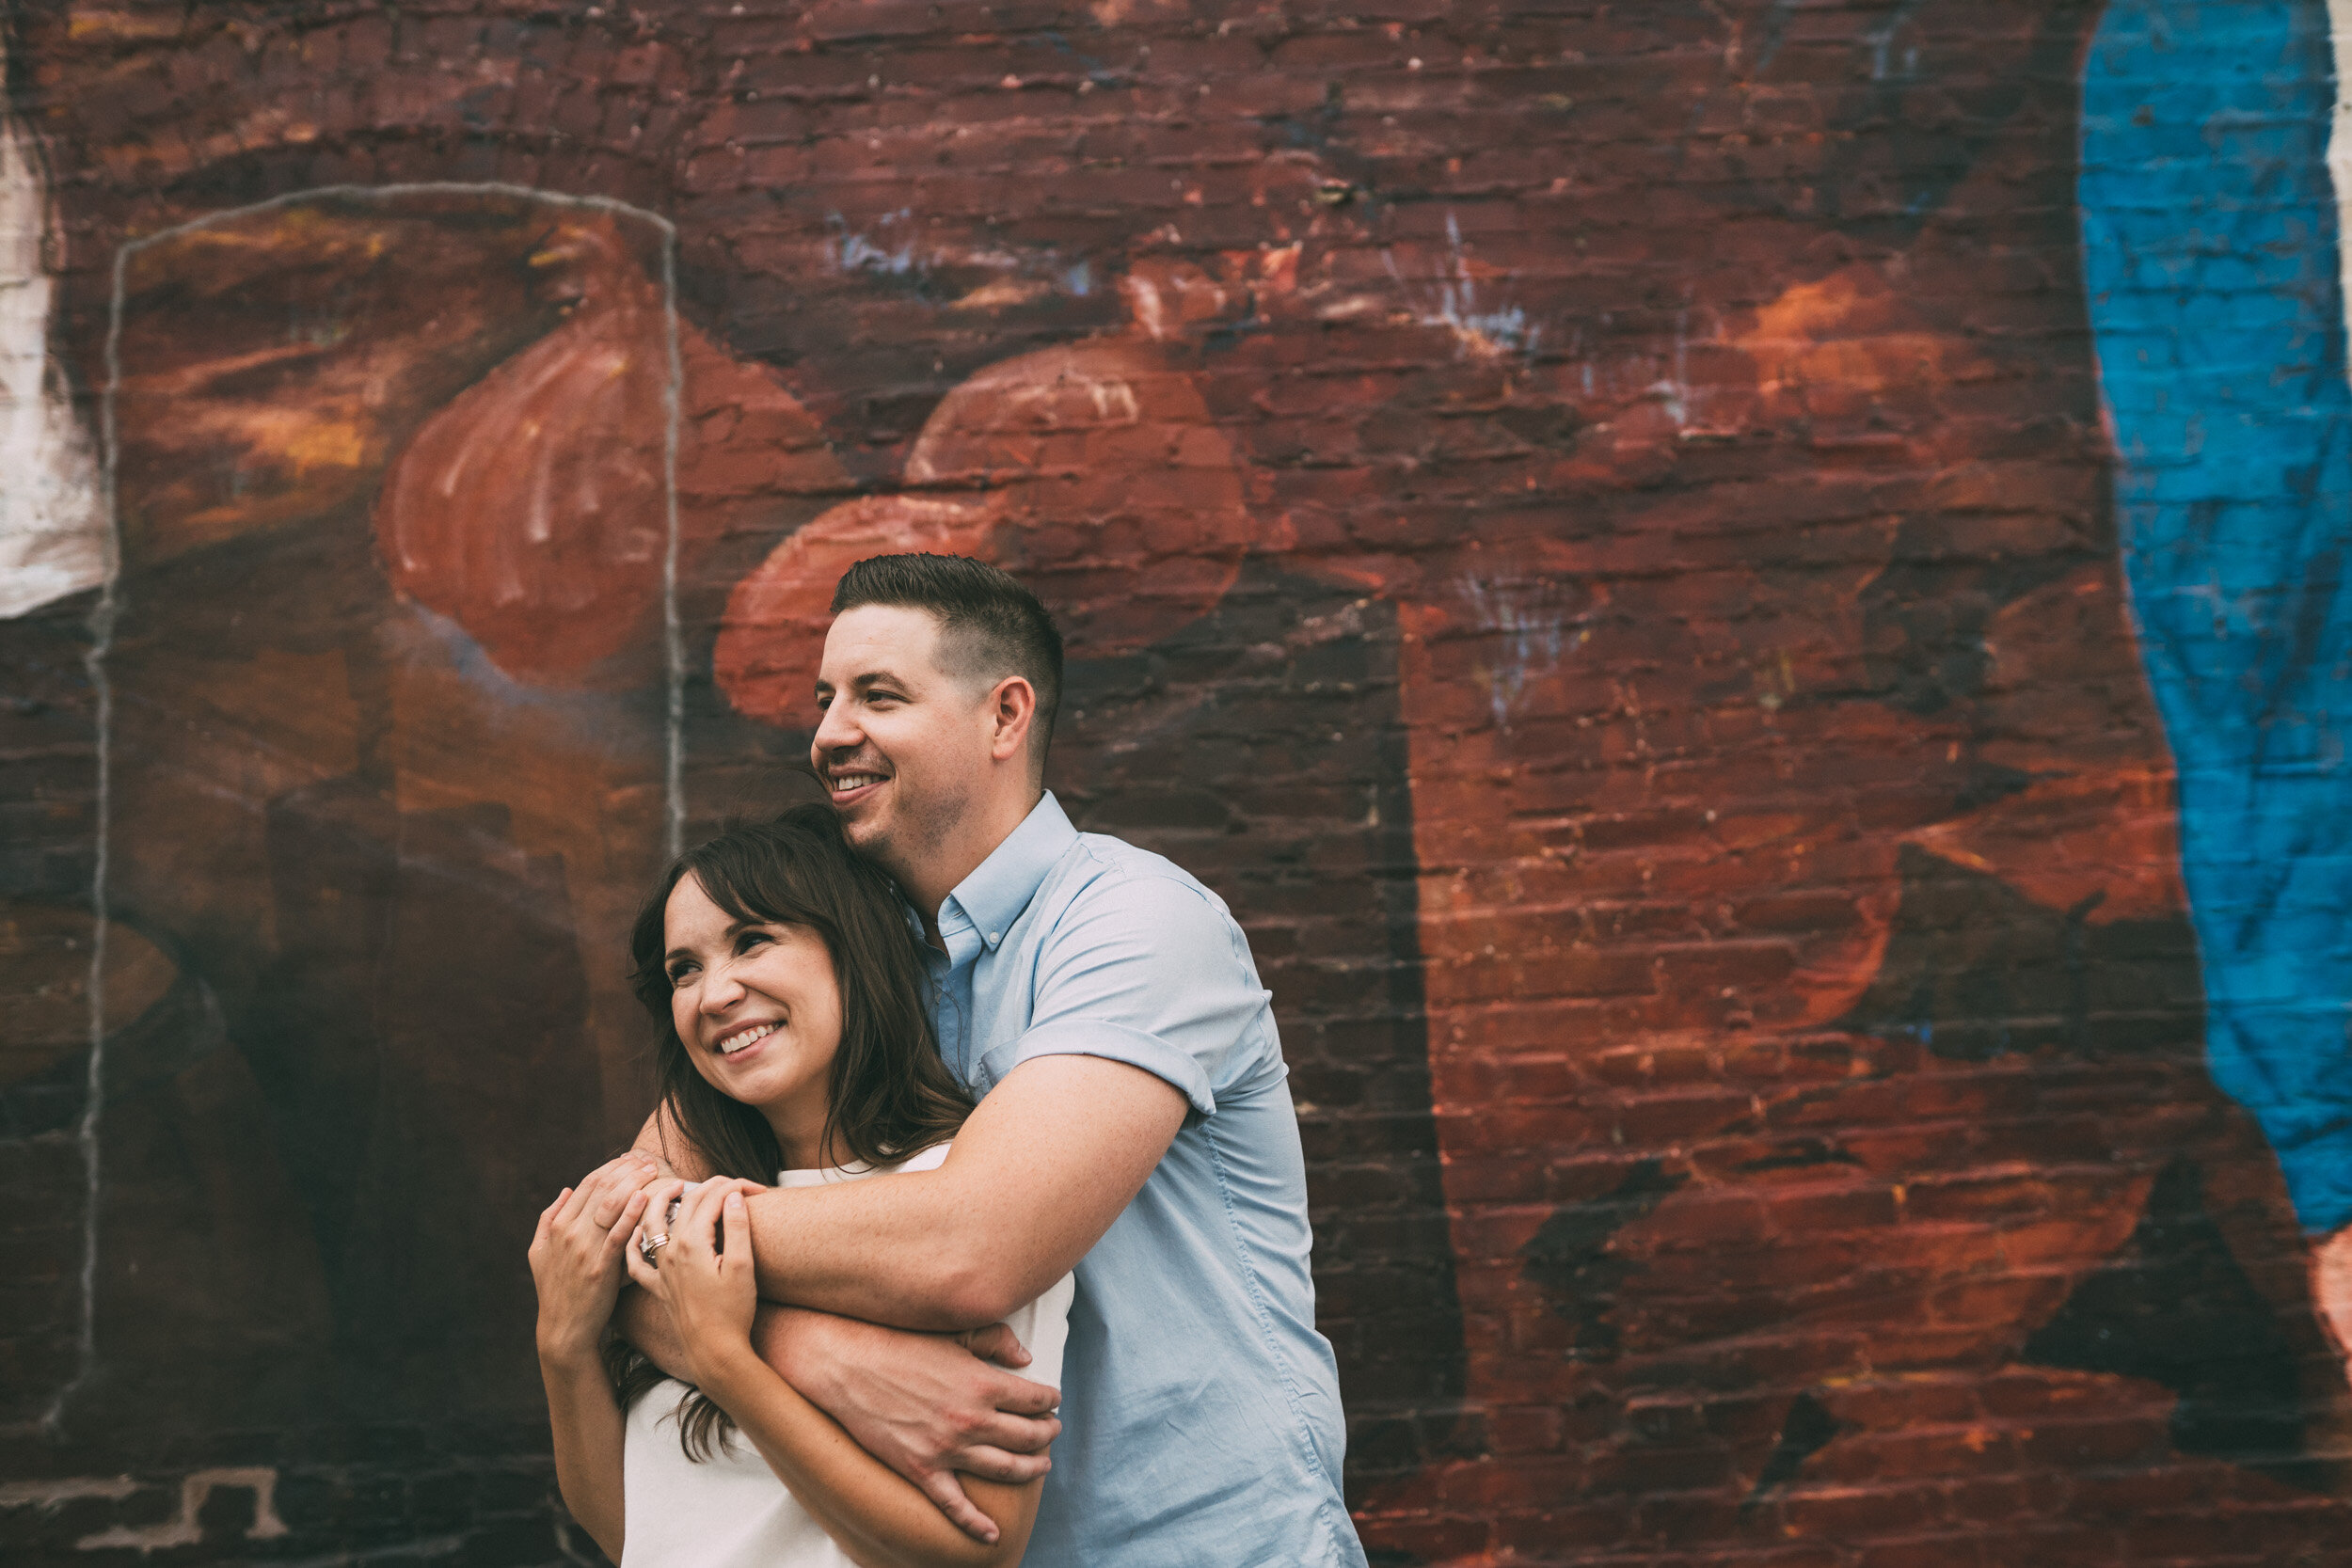 engagement photo in front of wall mural